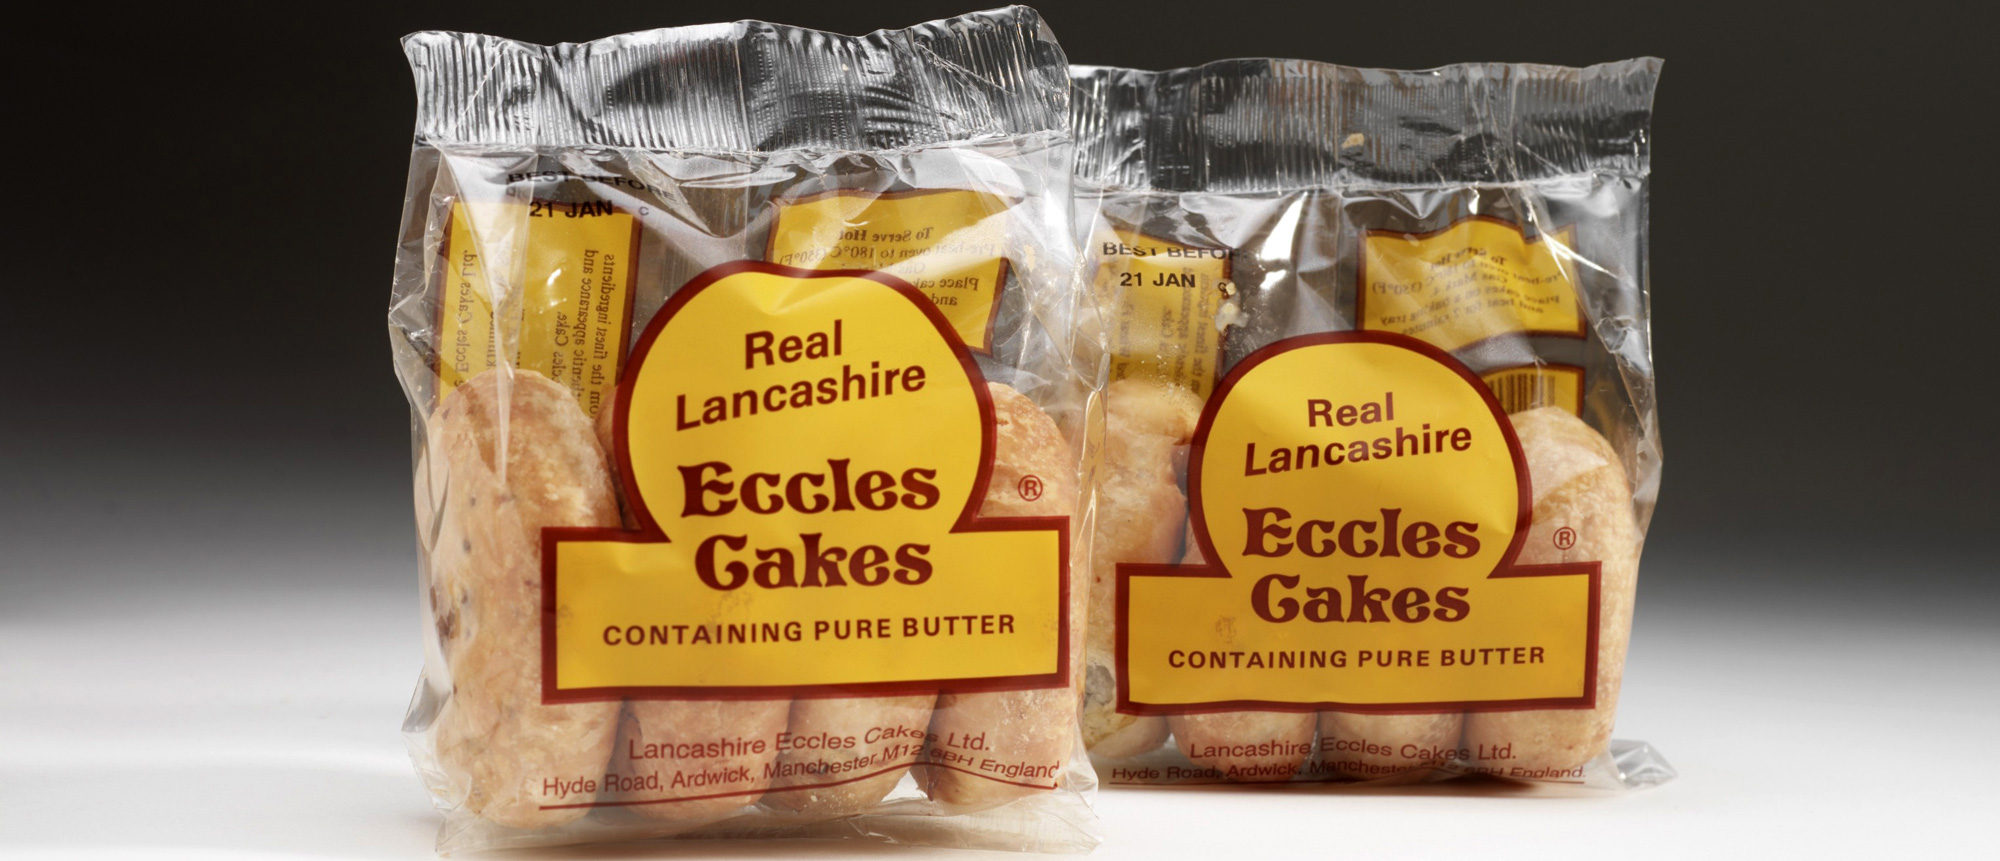 Handmade Eccles Cakes Real Lancashire Eccles Cakes